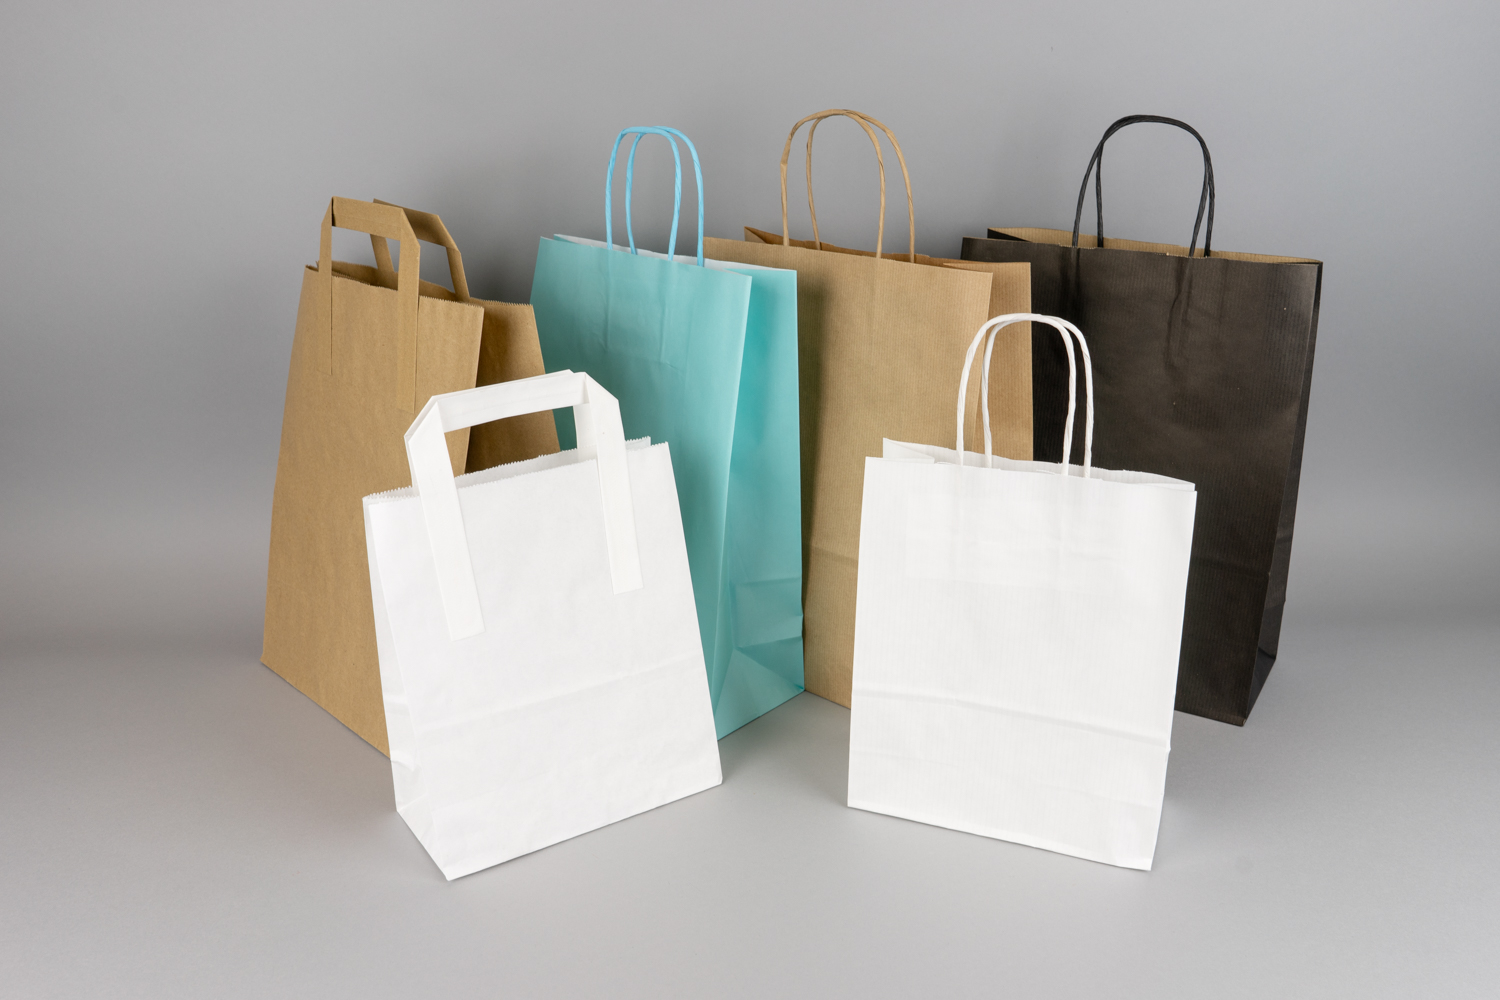 Top 5 Benefits Of Using A Paper Bag As An Alternative To Plastic